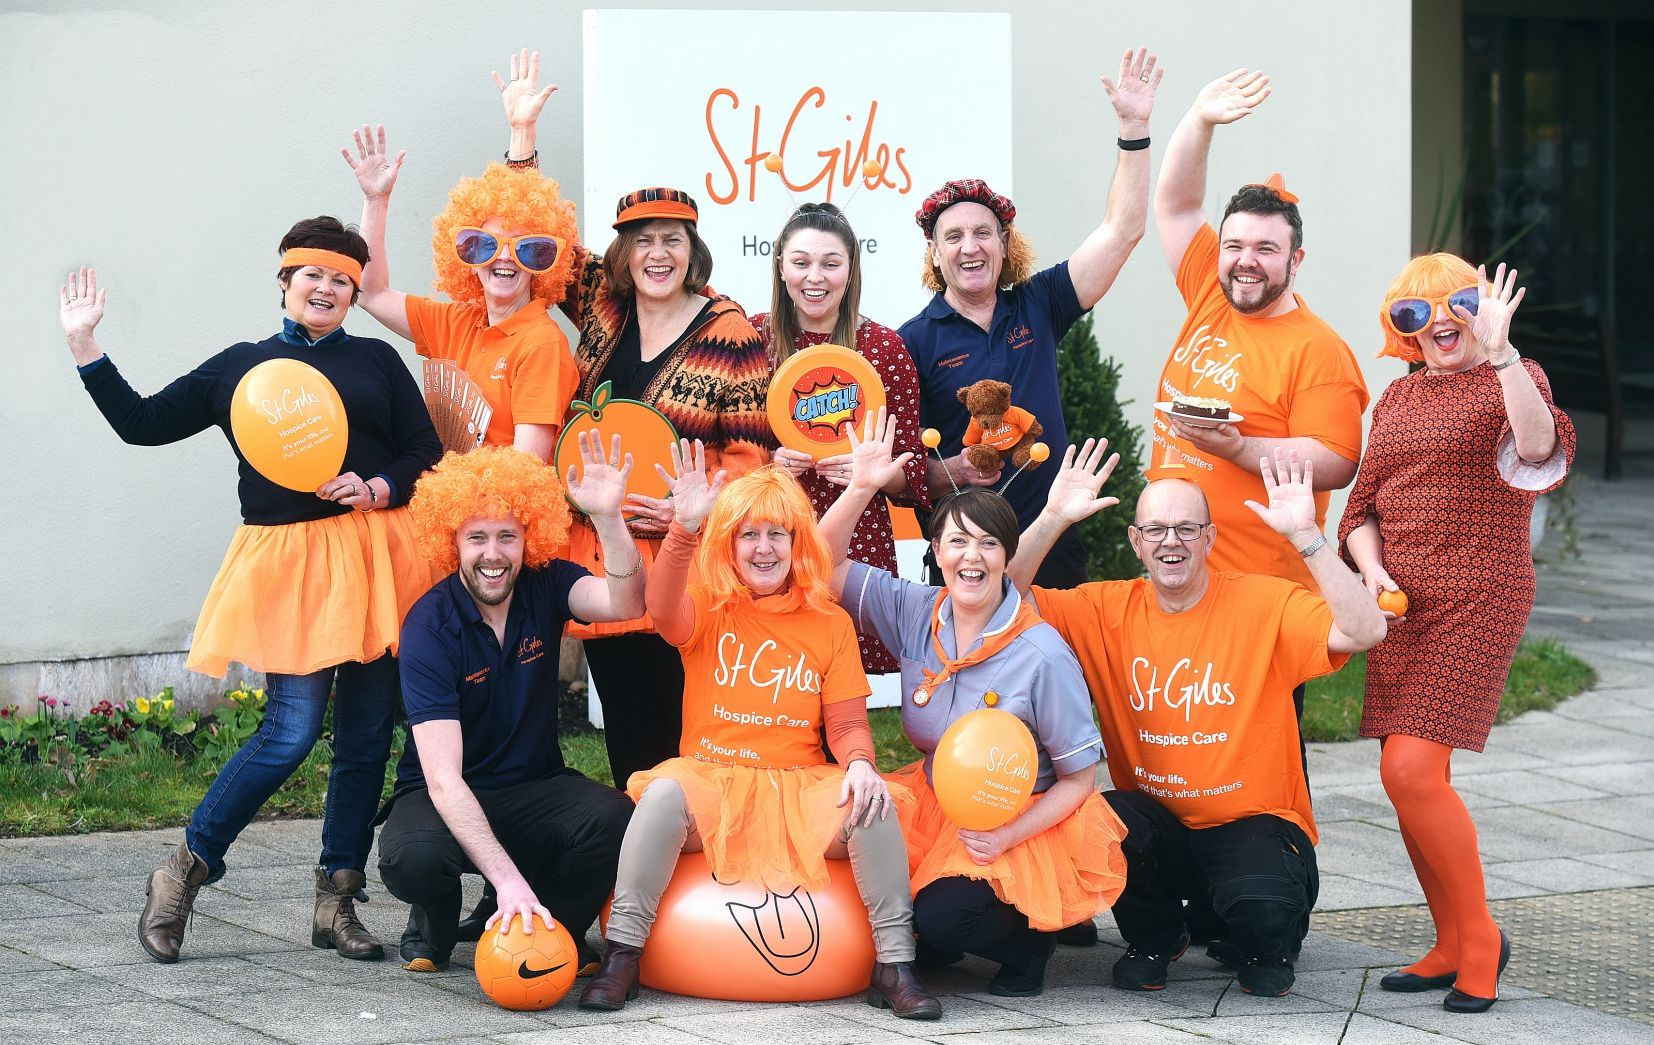 Go orange to support St Giles Hospice on 3rd April